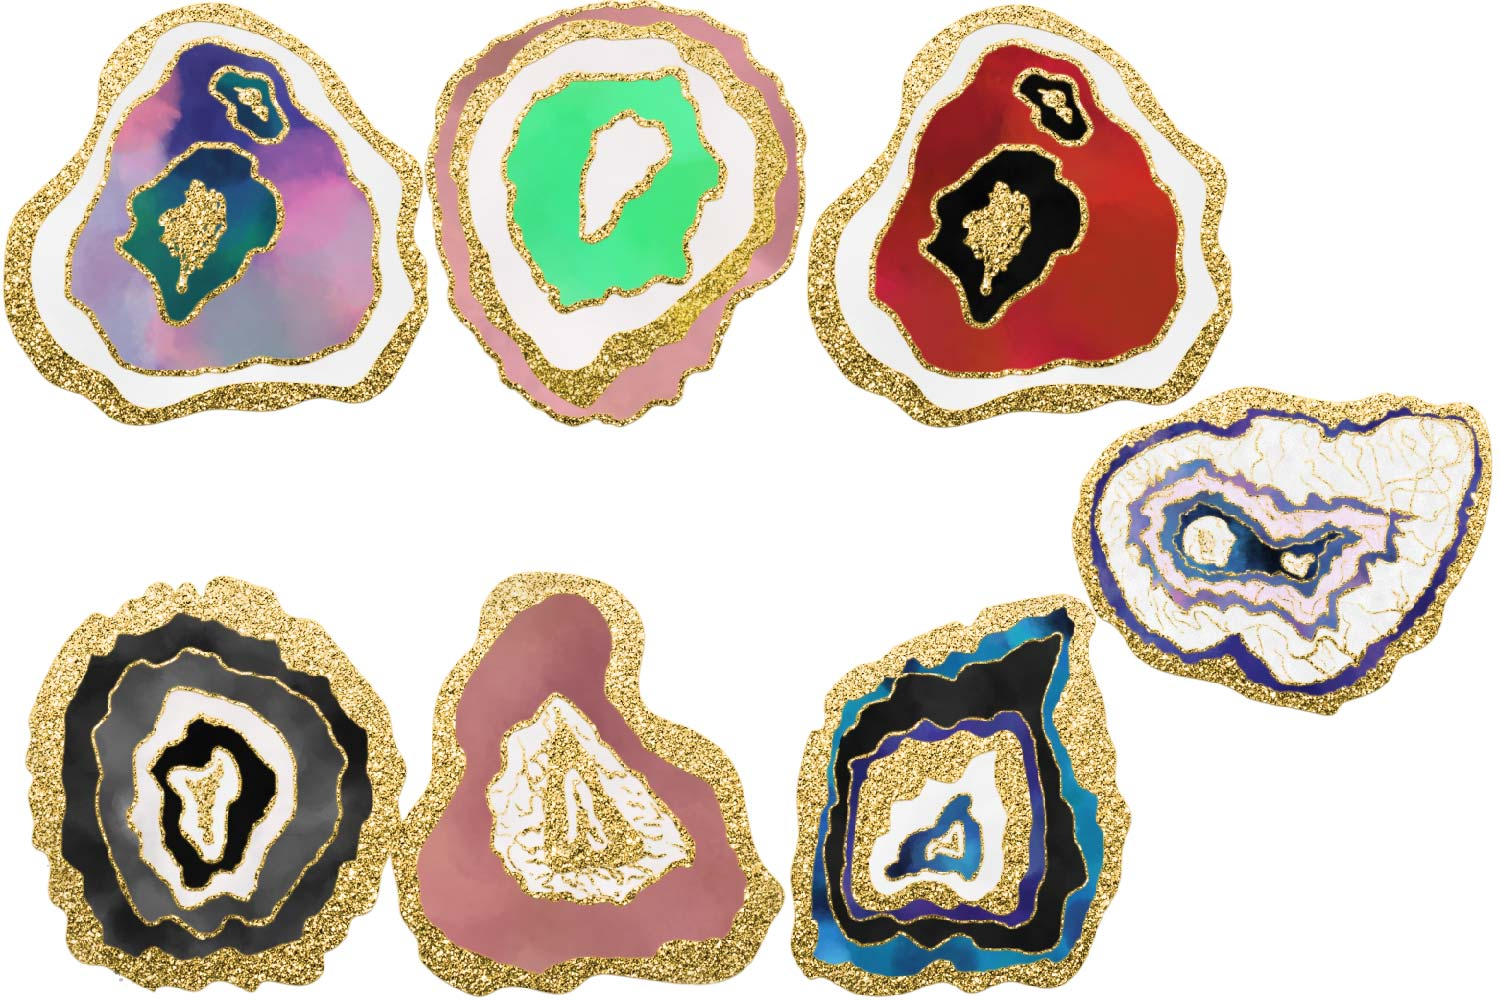 Clipart geodes jpg black and white Geode Gold Clipart jpg black and white